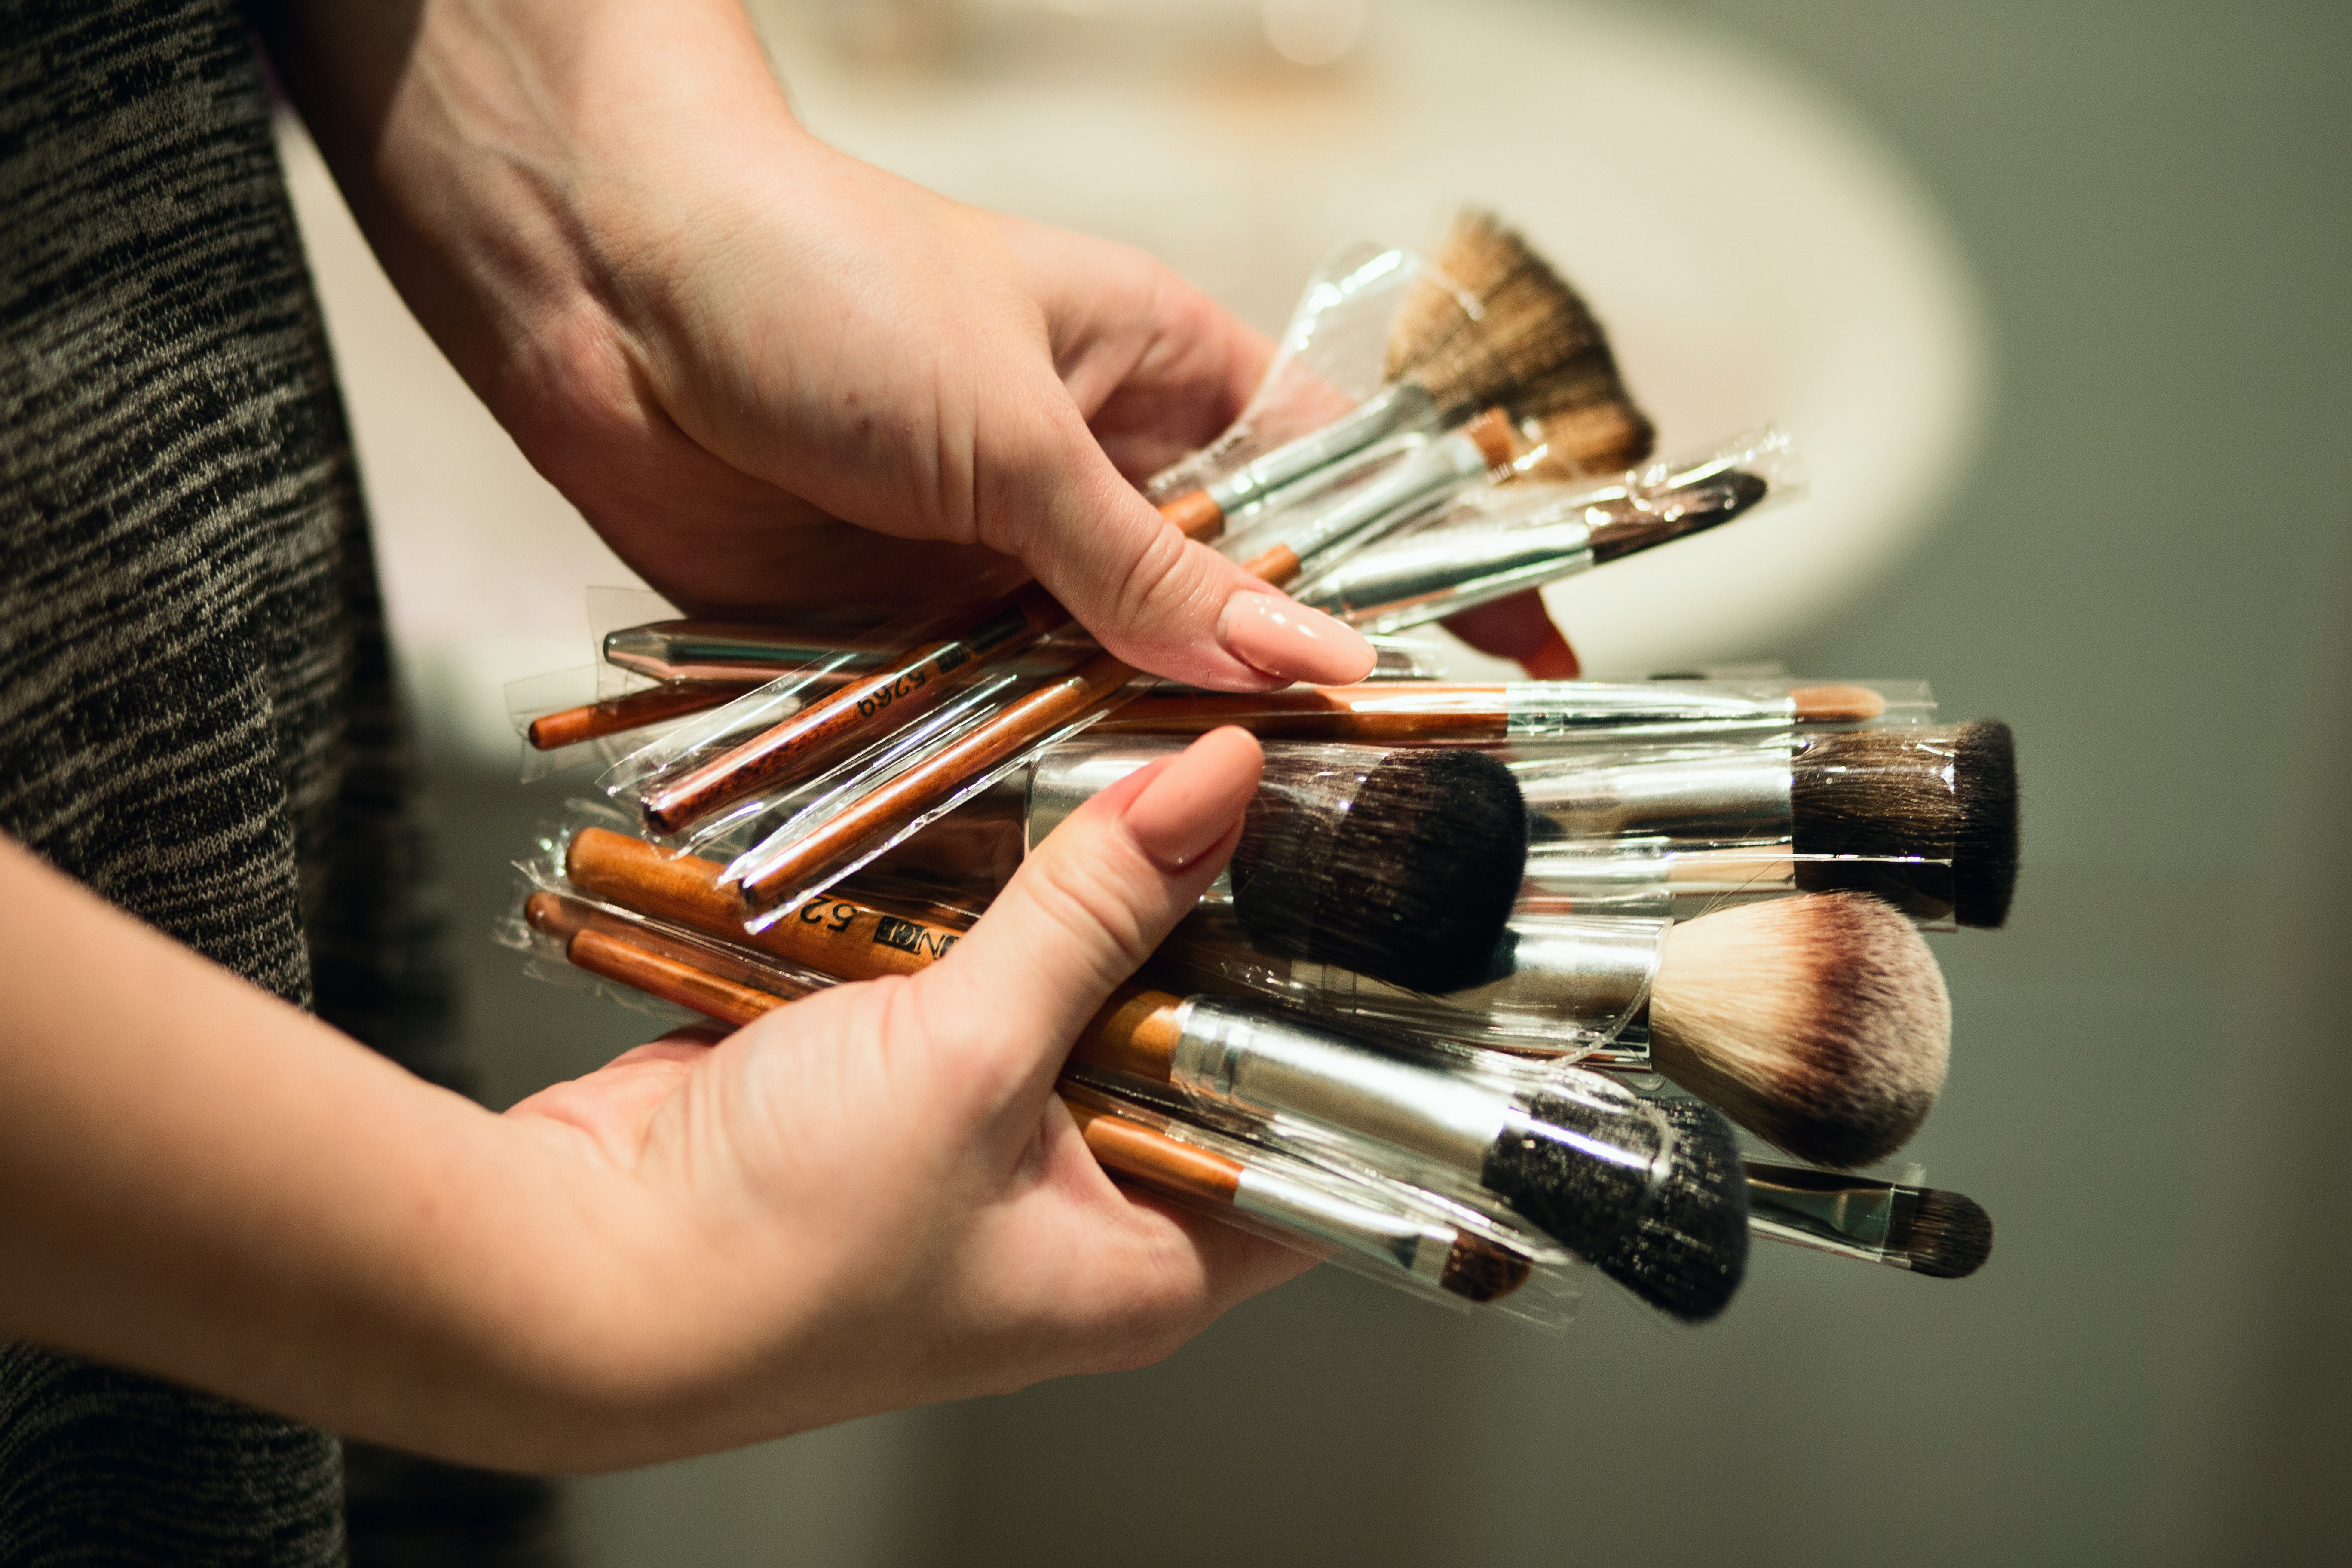 Guide on Best Makeup Brushes in India|Know your Makeup Brushes better